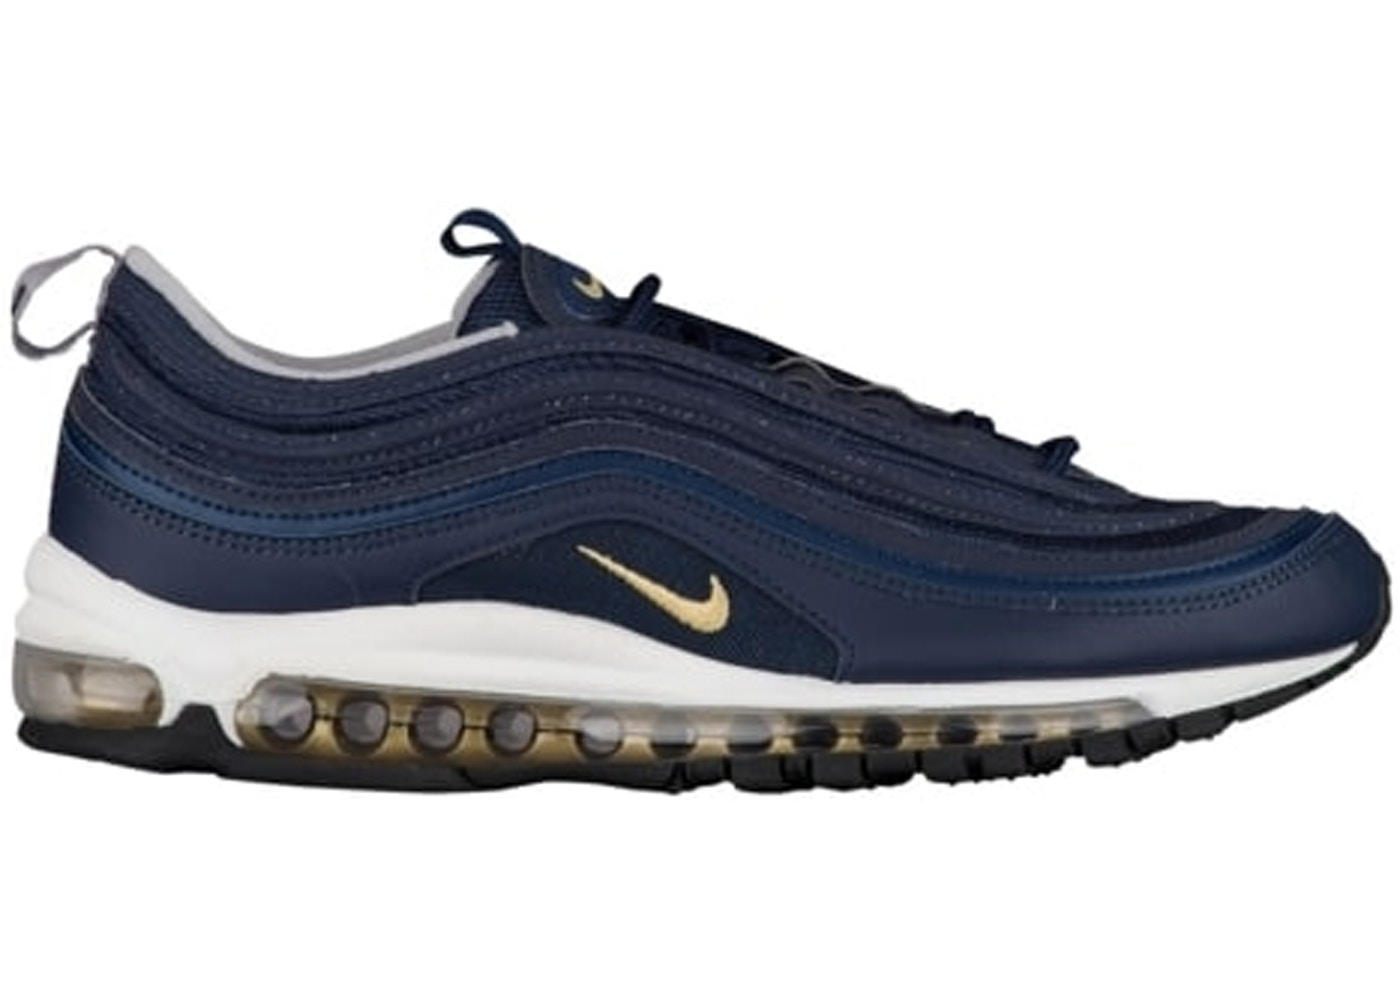 info for 95fff cf352 Image is loading NIKE-AIR-MAX-97-BLUE-GOLD-921826 Air Max 97 Midnight Navy  Metallic Gold - 921826-400 ...